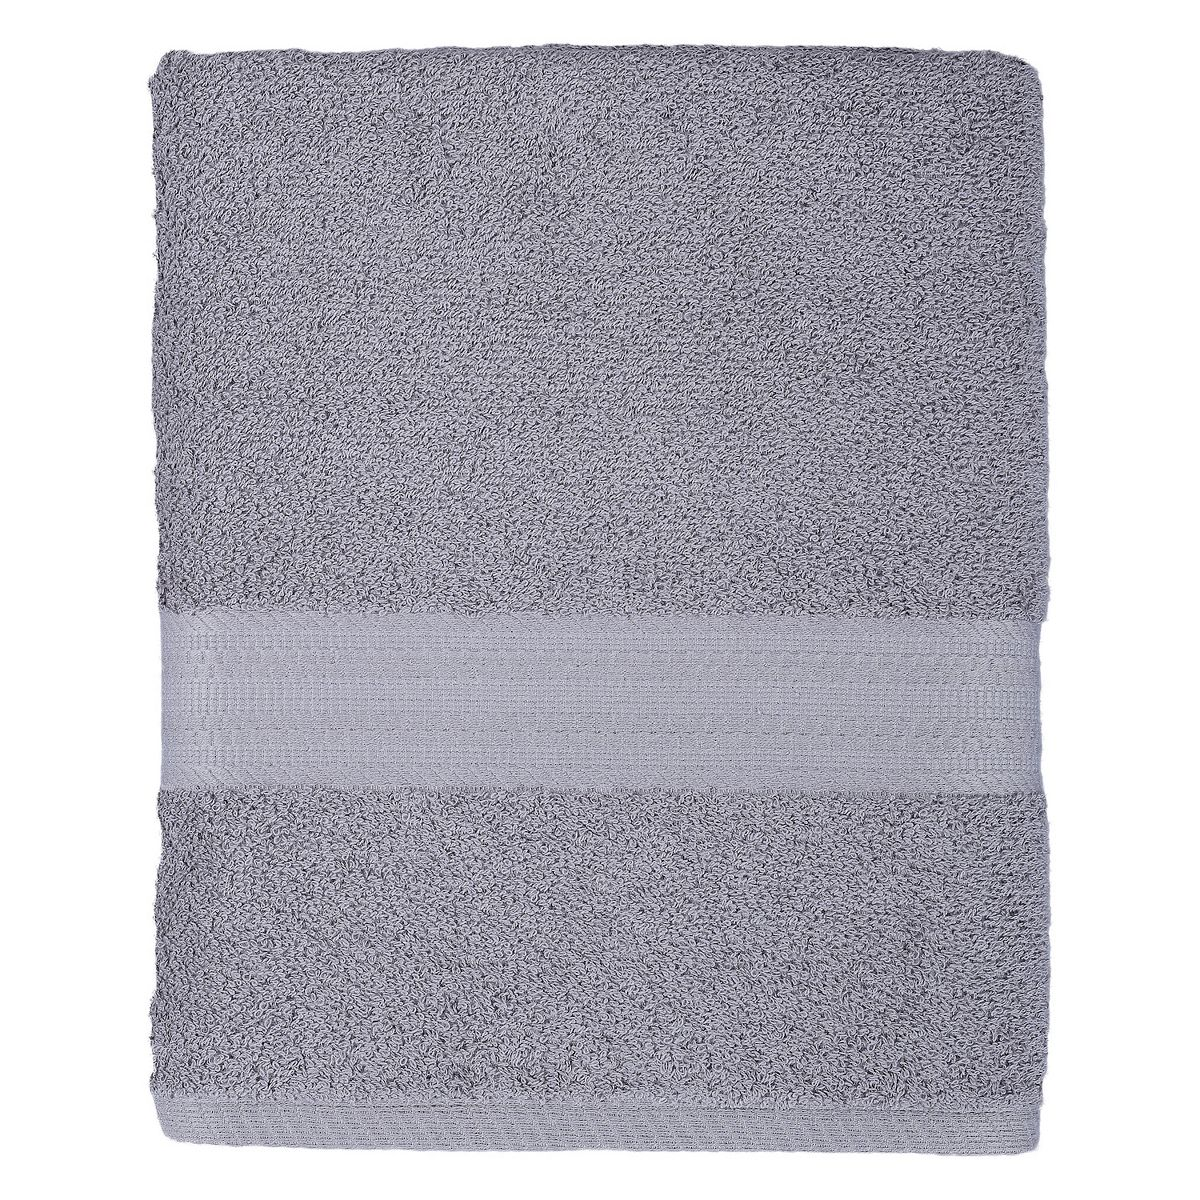 .99 Microfiber Pillows & Bath Towels TODAY ONLY at Kohl's!